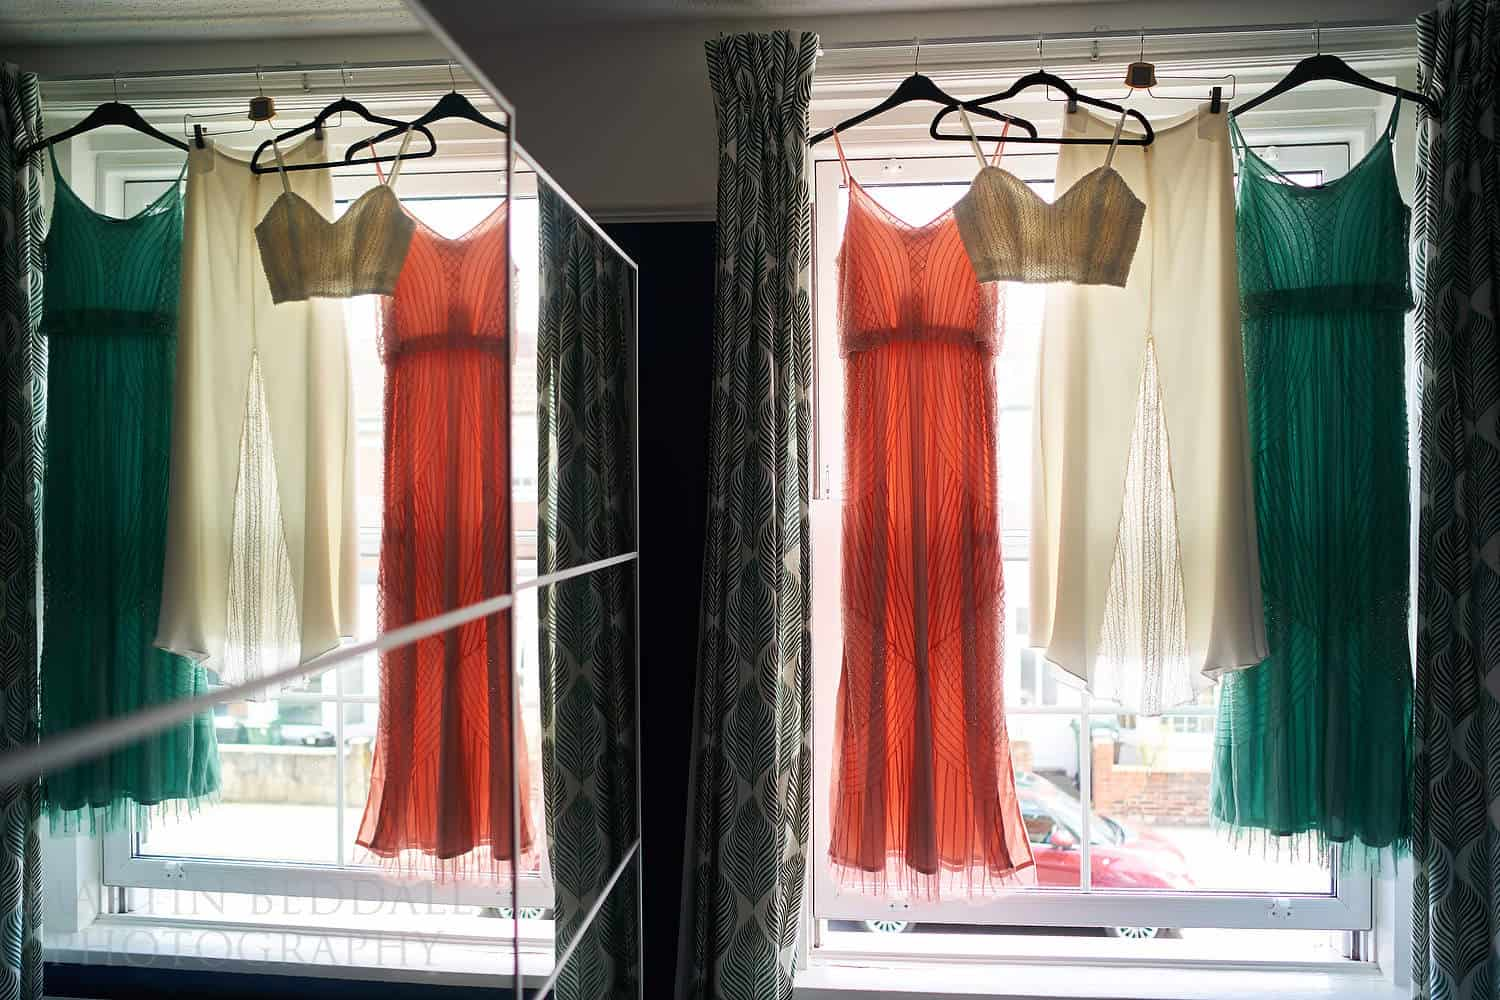 Bride and bridesmaids dresses hanging on the window